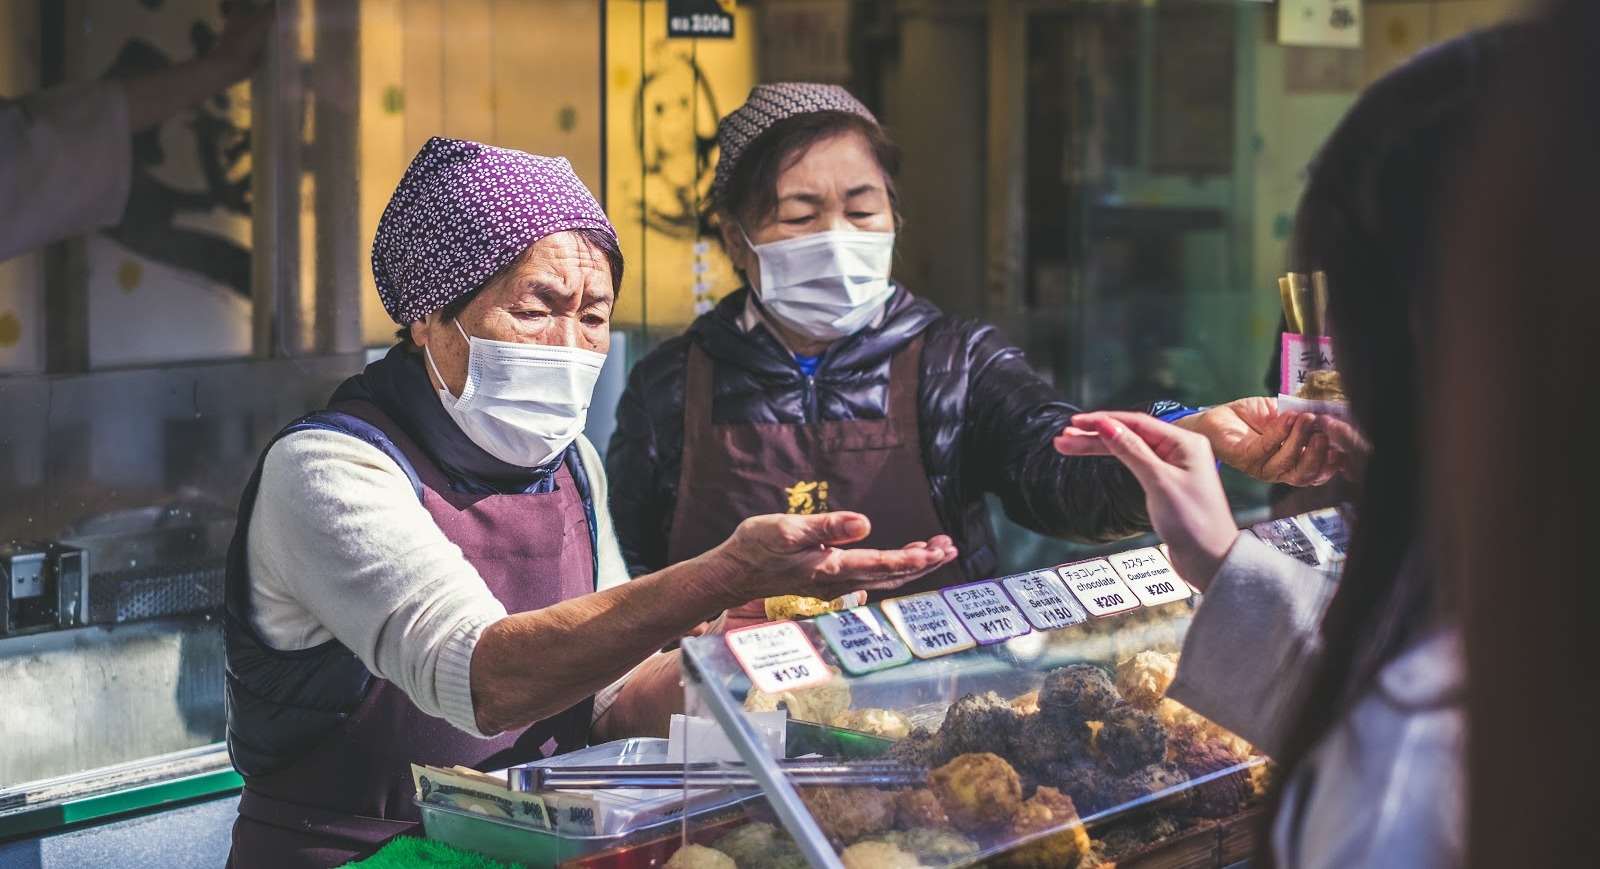 Women in a Chinese market wearing face masks for protection